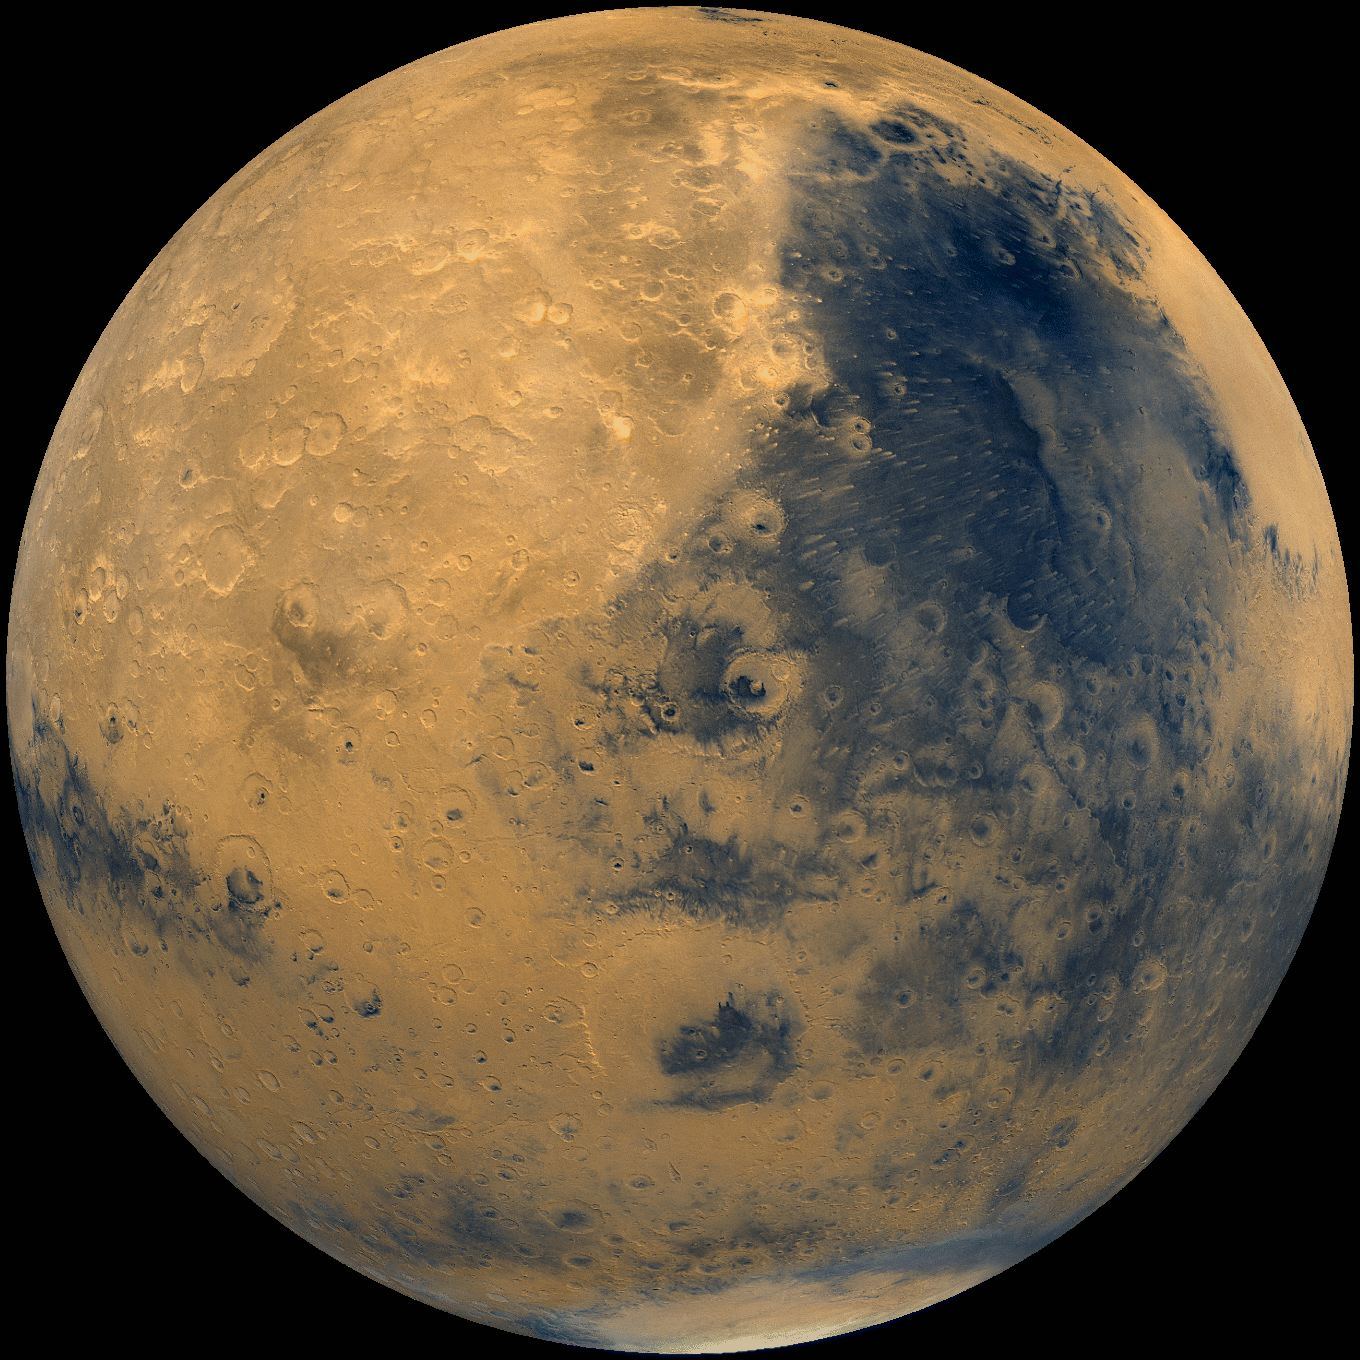 What can NASA do to make the Mars Mission safer?